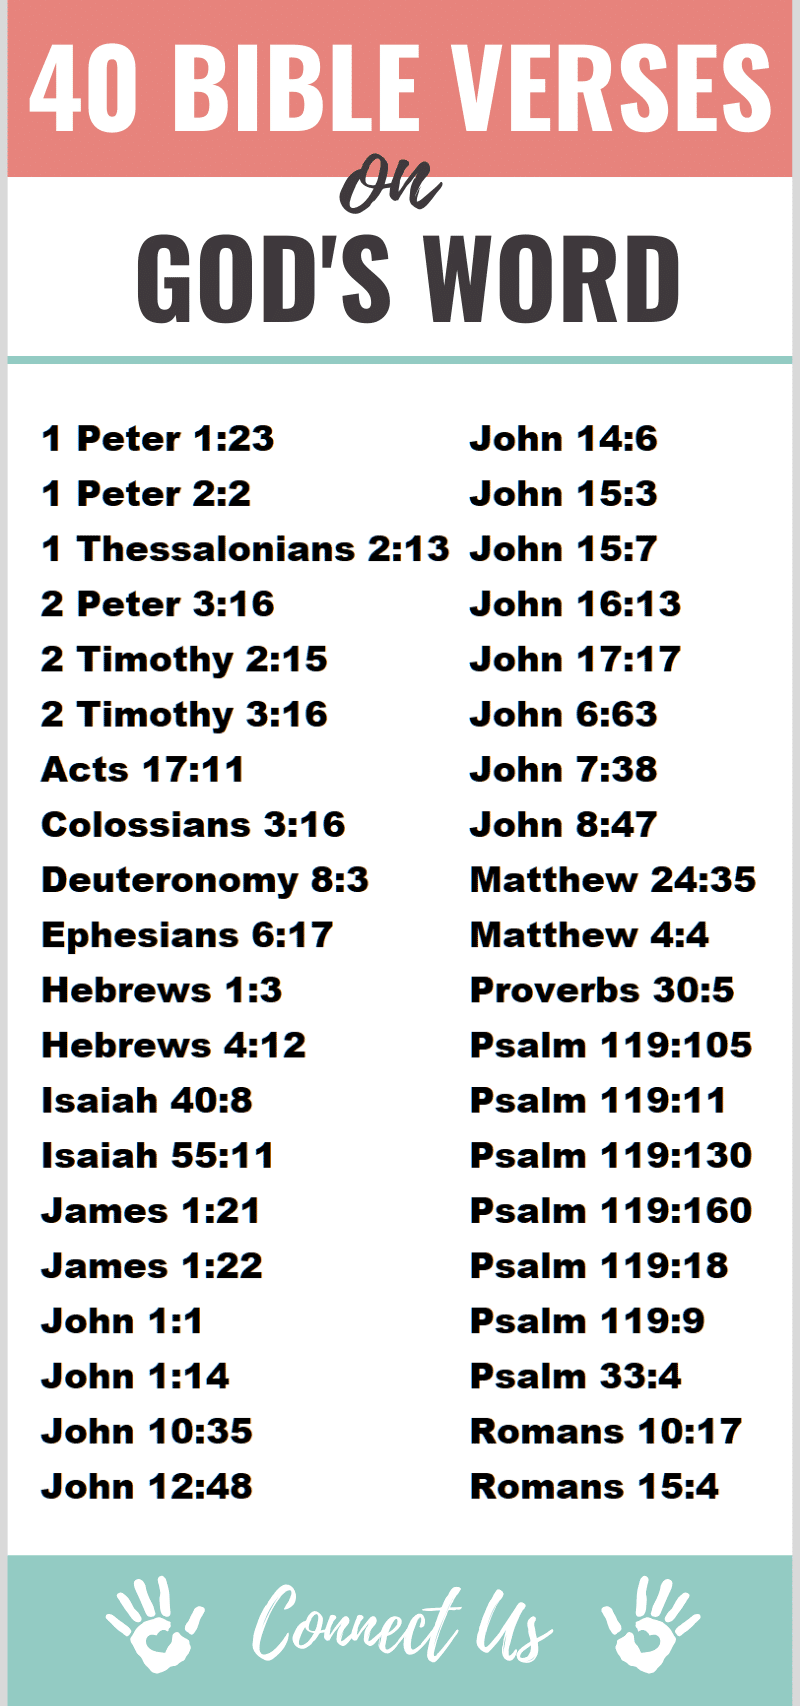 Bible Verses on God's Word